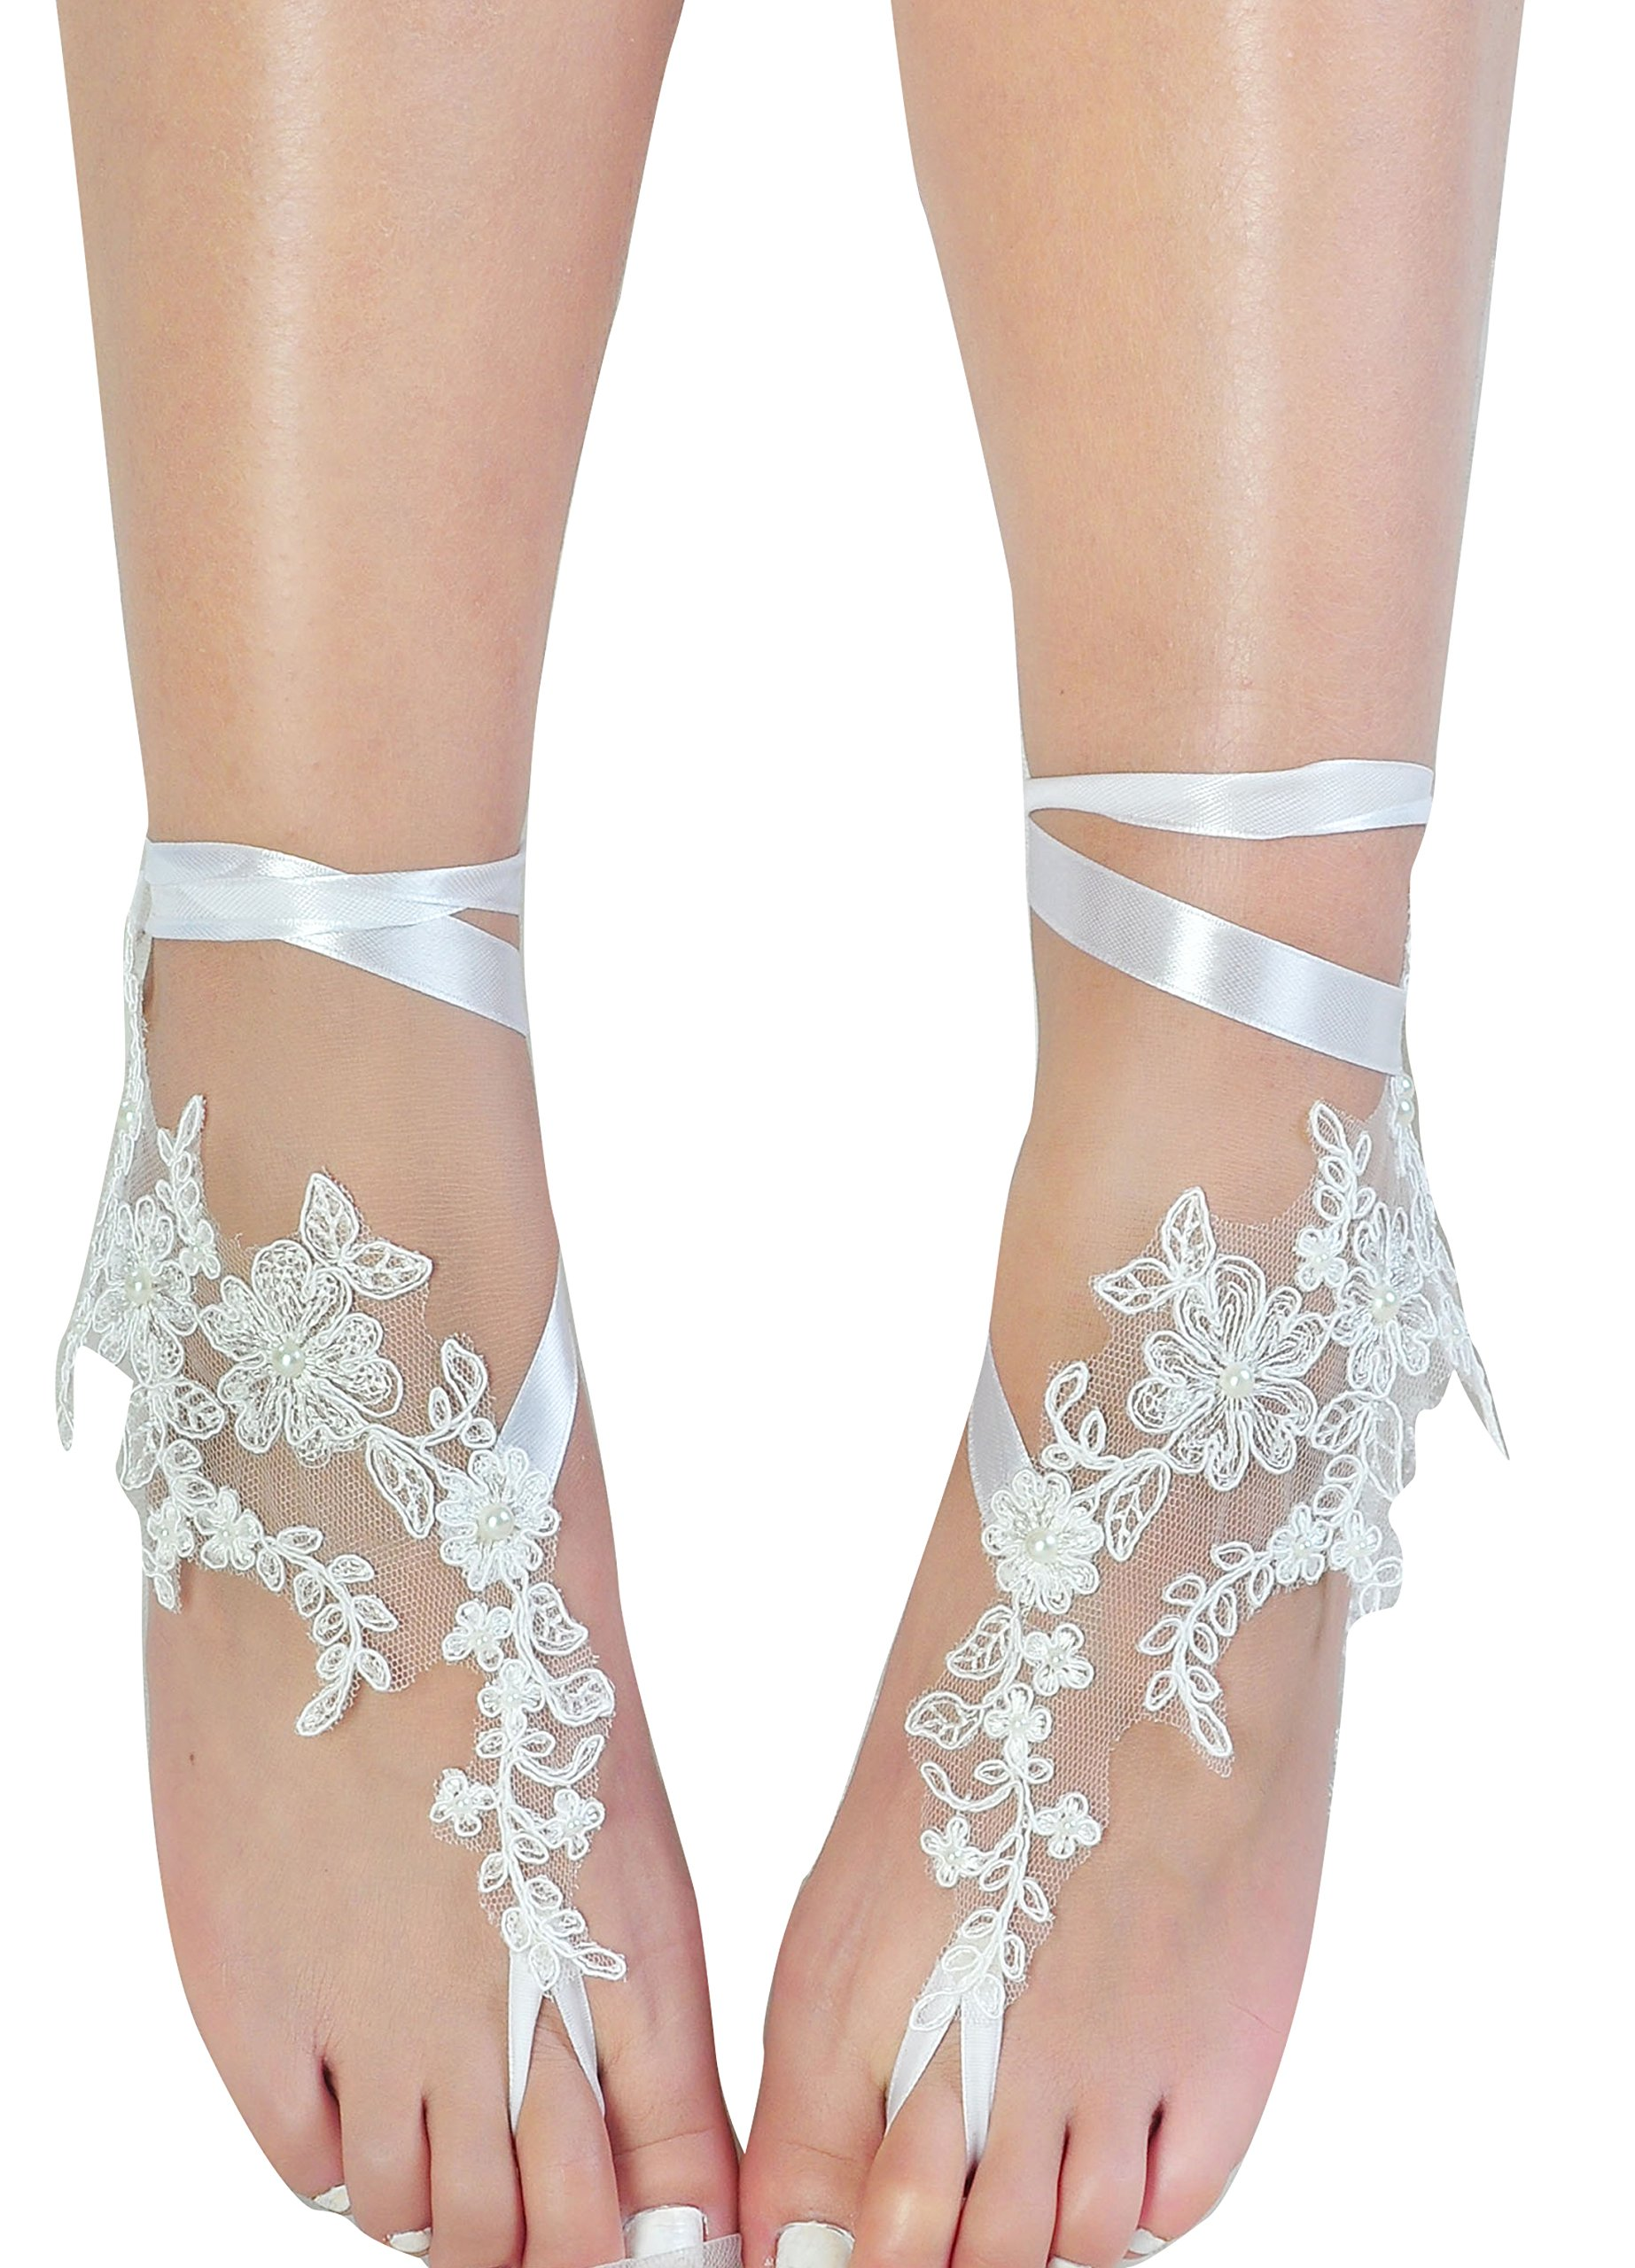 Romantic Lace Barefoot Sandals,Bridal Wedding Shoes,Bridesmaid Barefoot Sandals